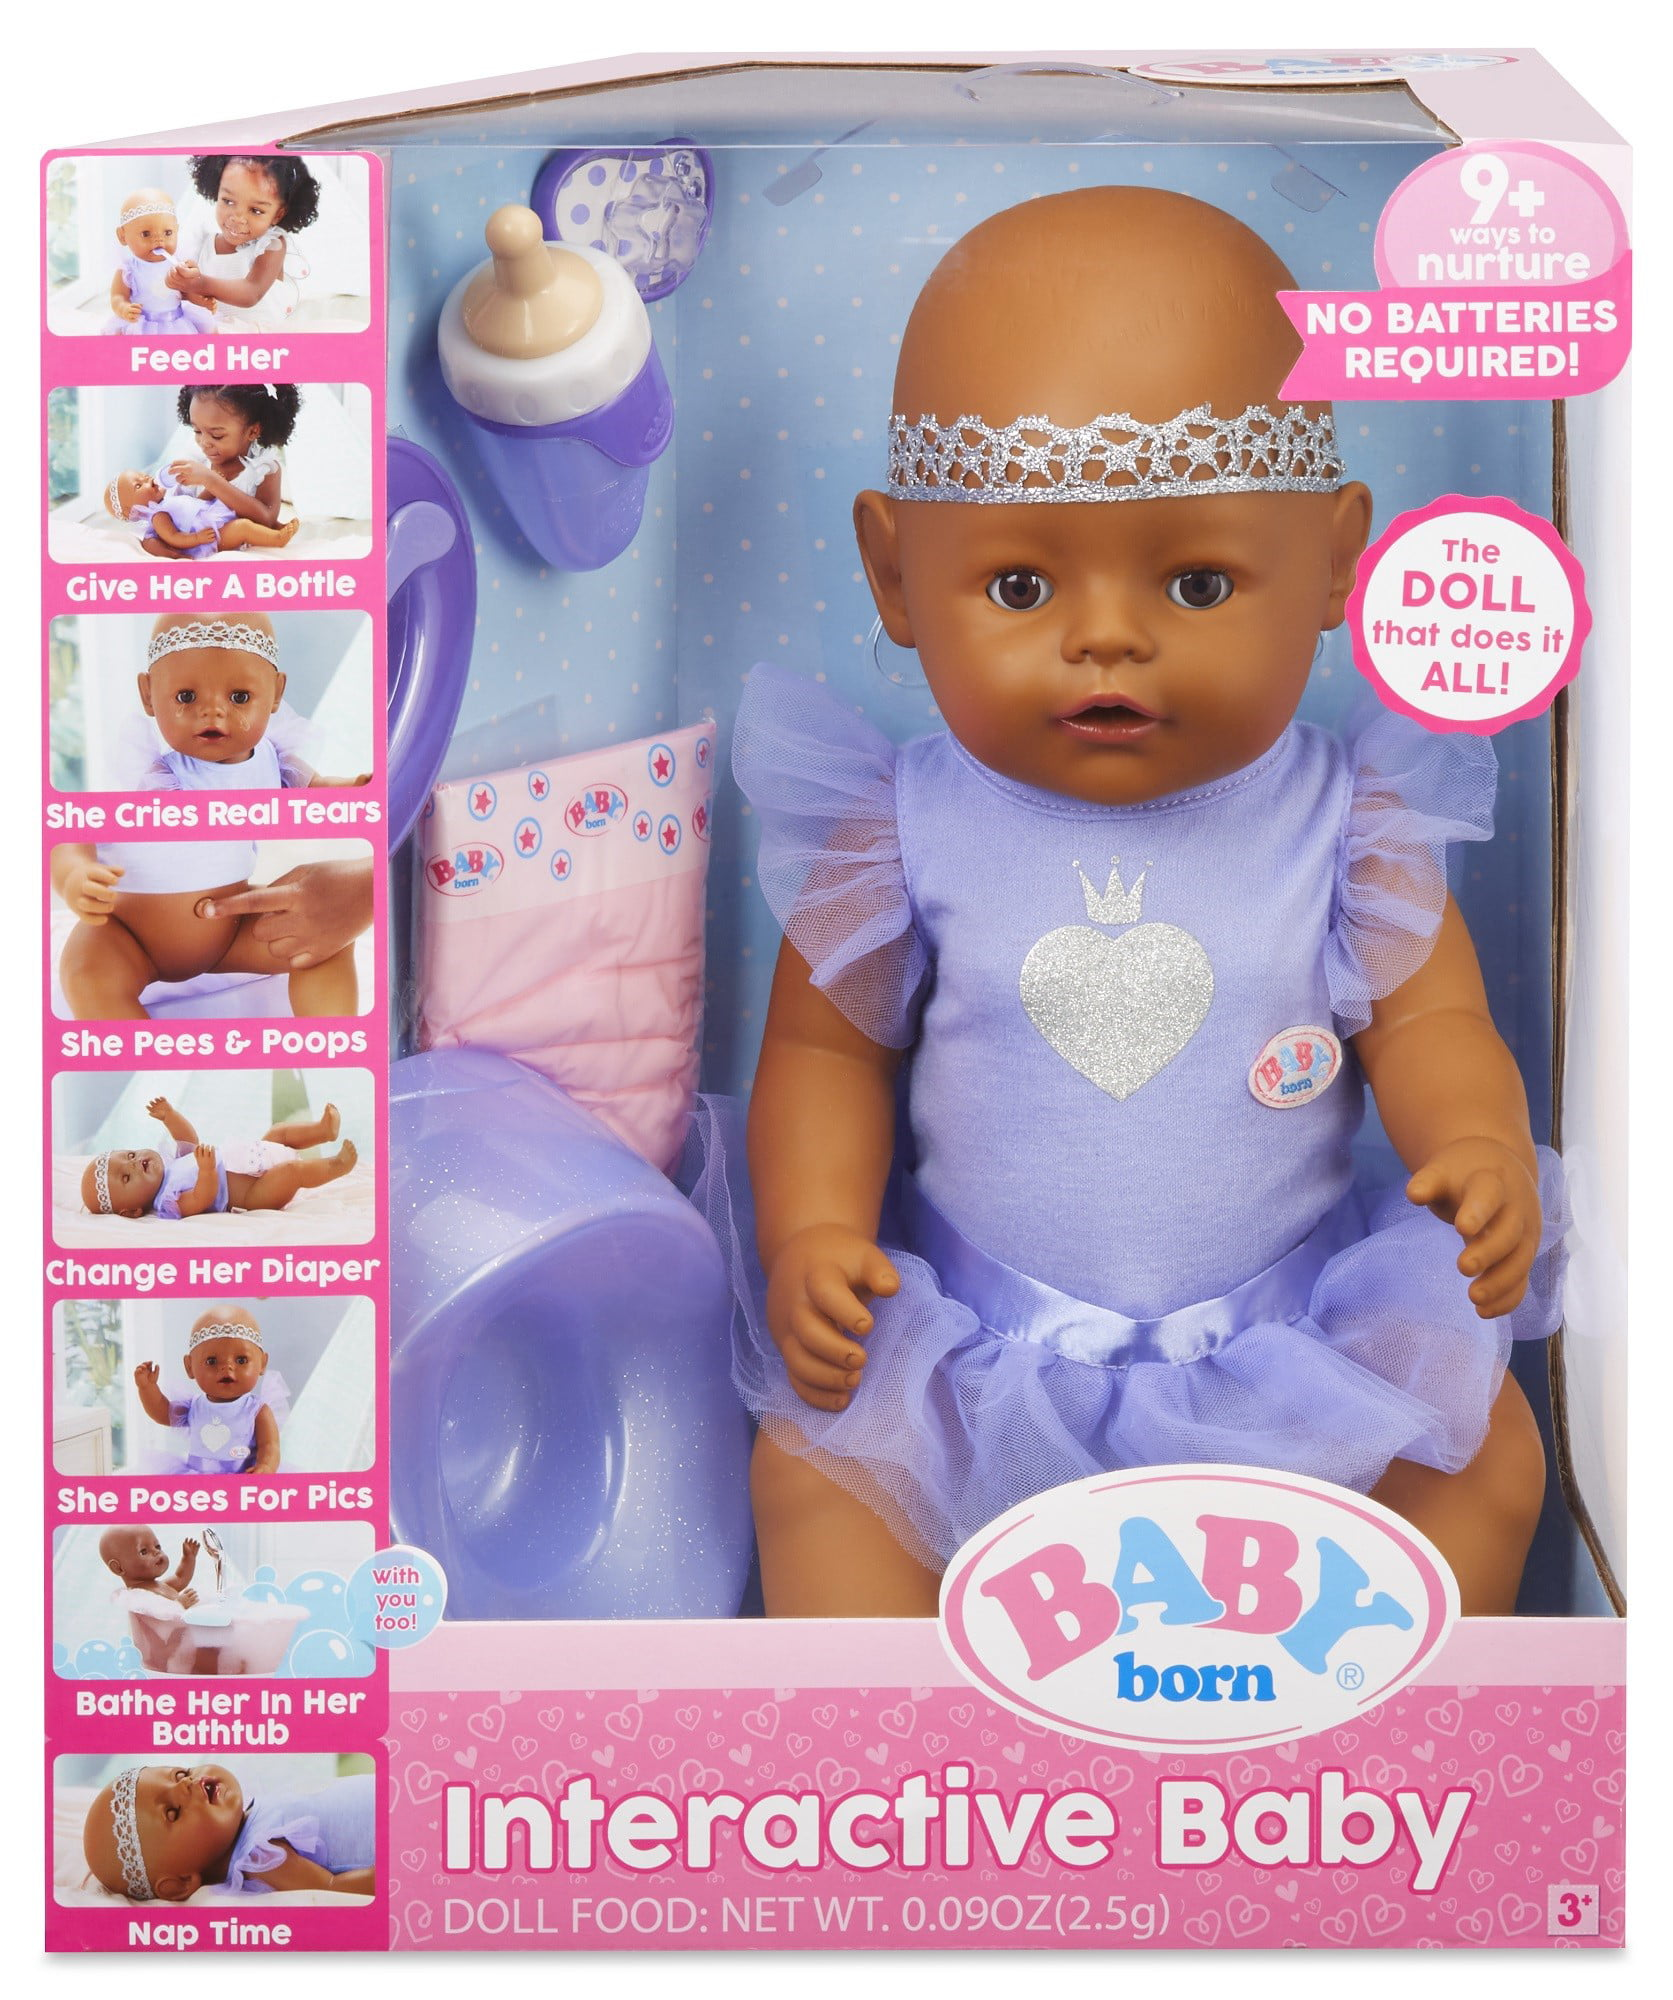 BABY born Interactive Baby Doll- Dark Brown Eyes by MGA Entertainment